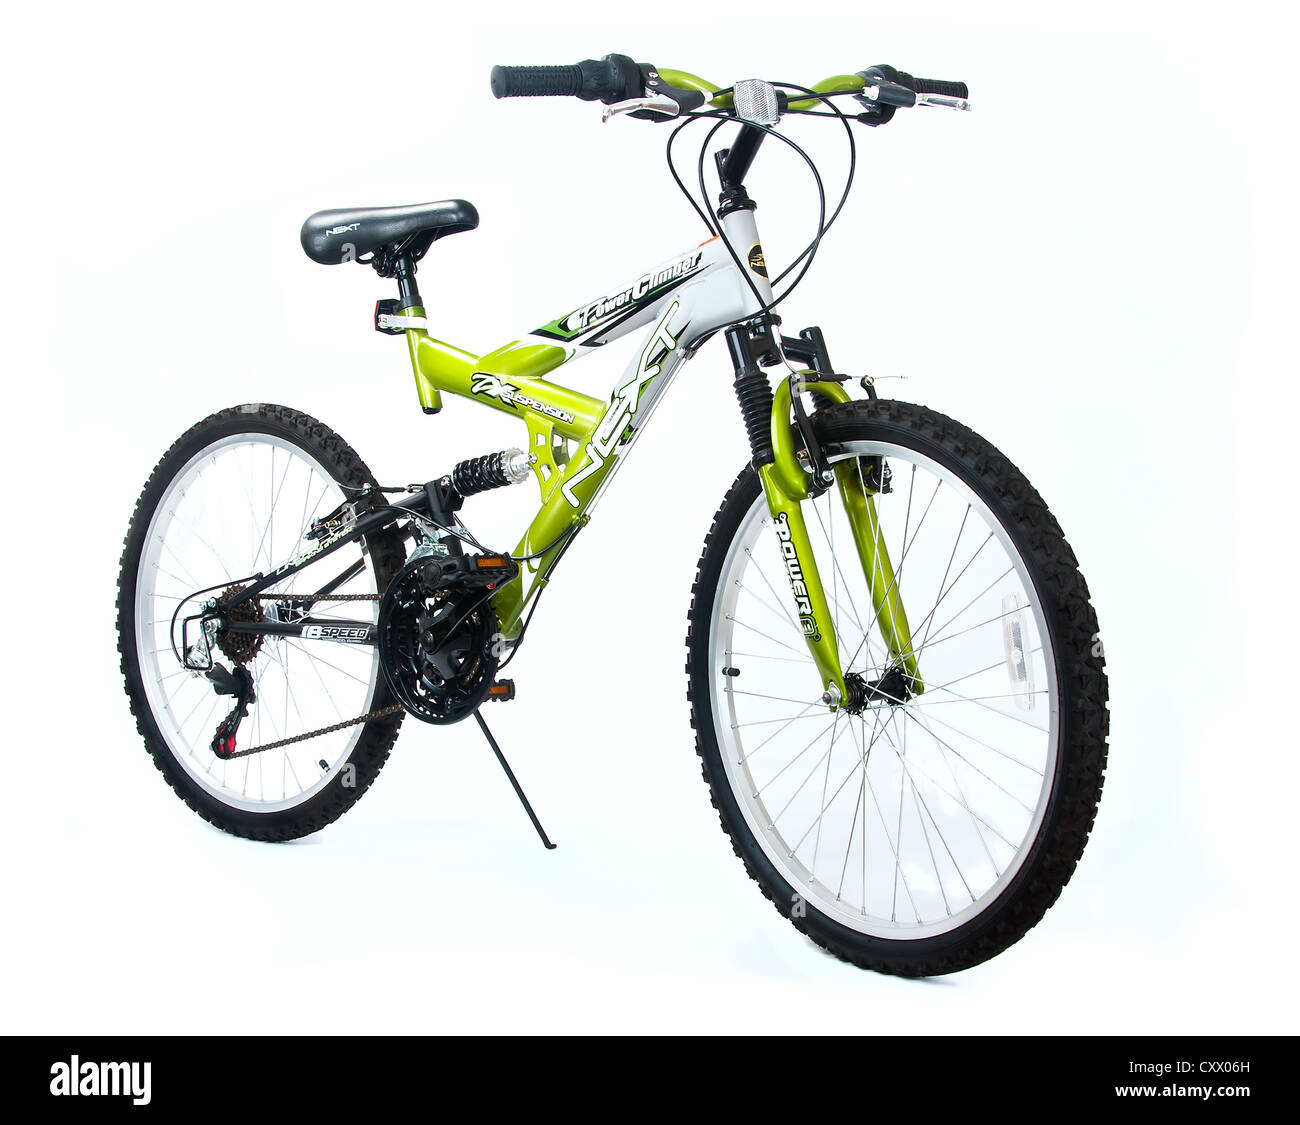 New bike with spring suspension - Stock Image